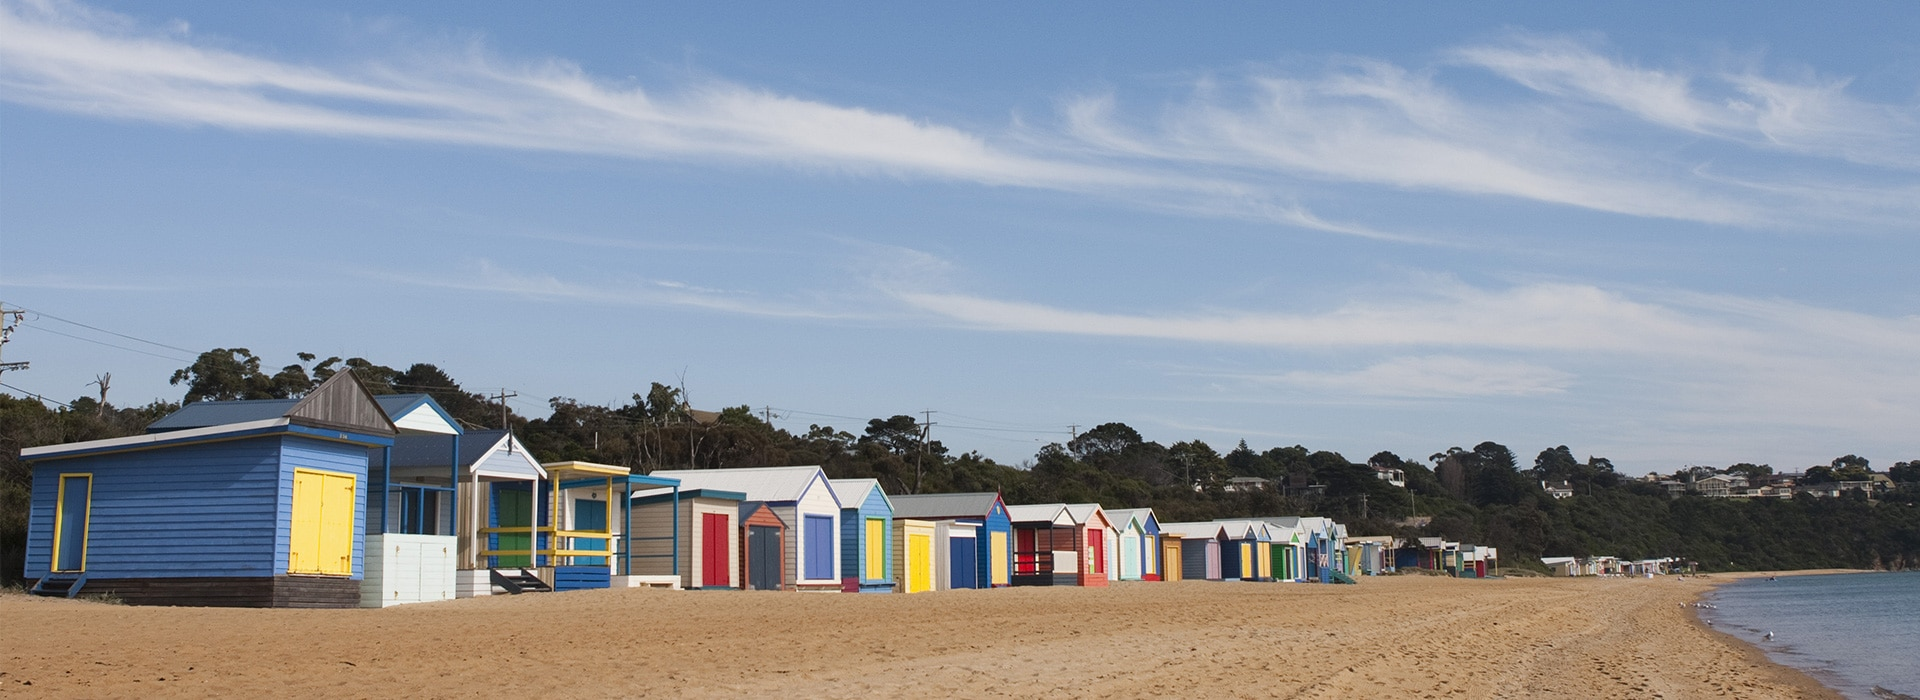 crowns-and-bridges-in-Mornington